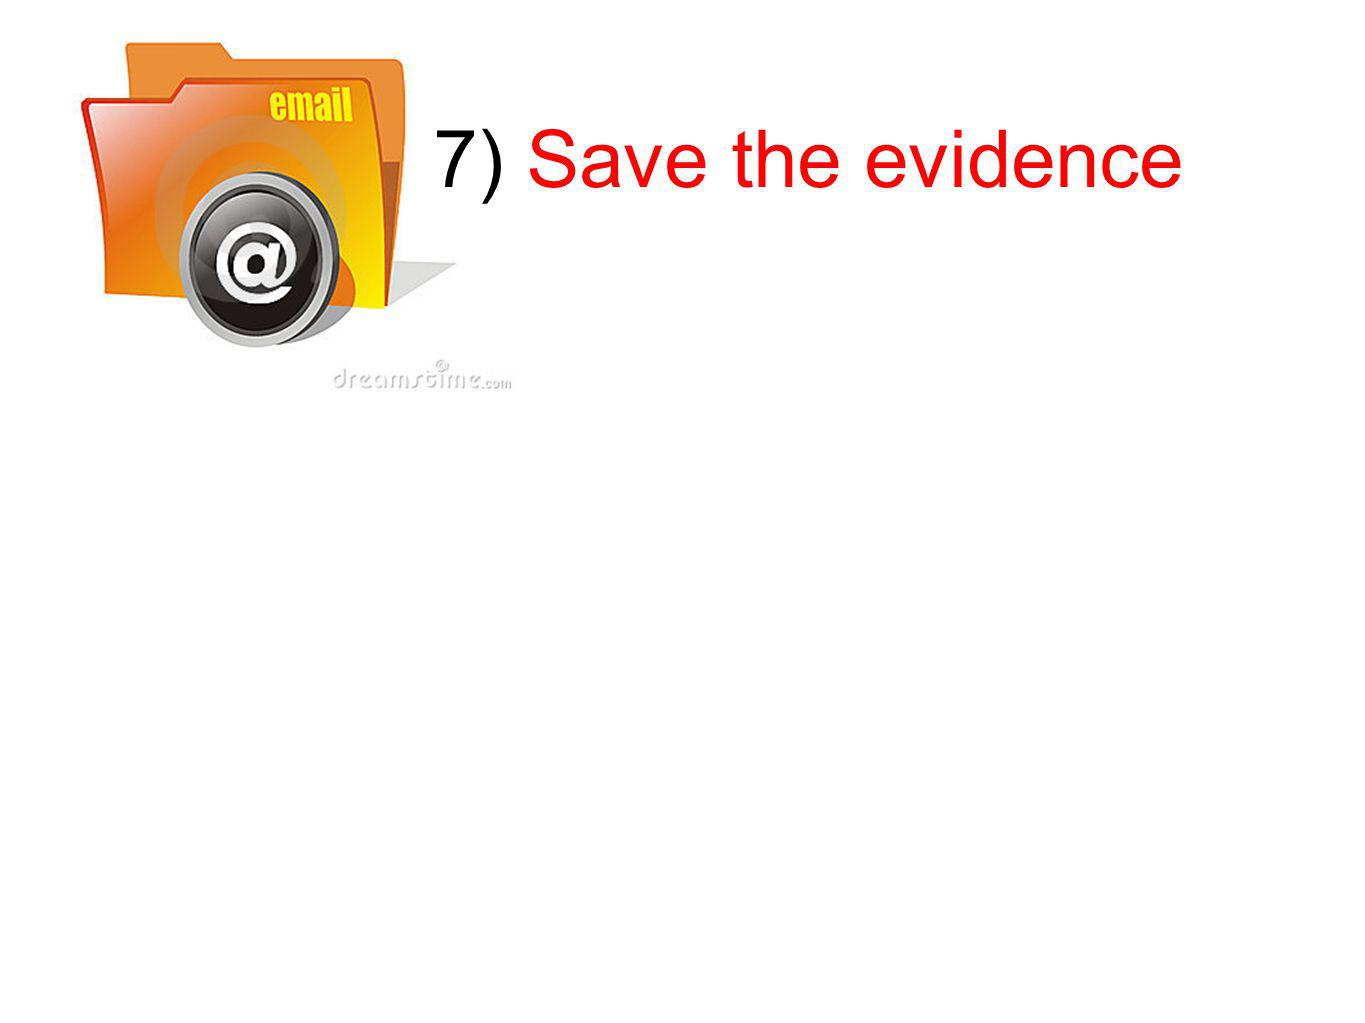 7) Save the evidence